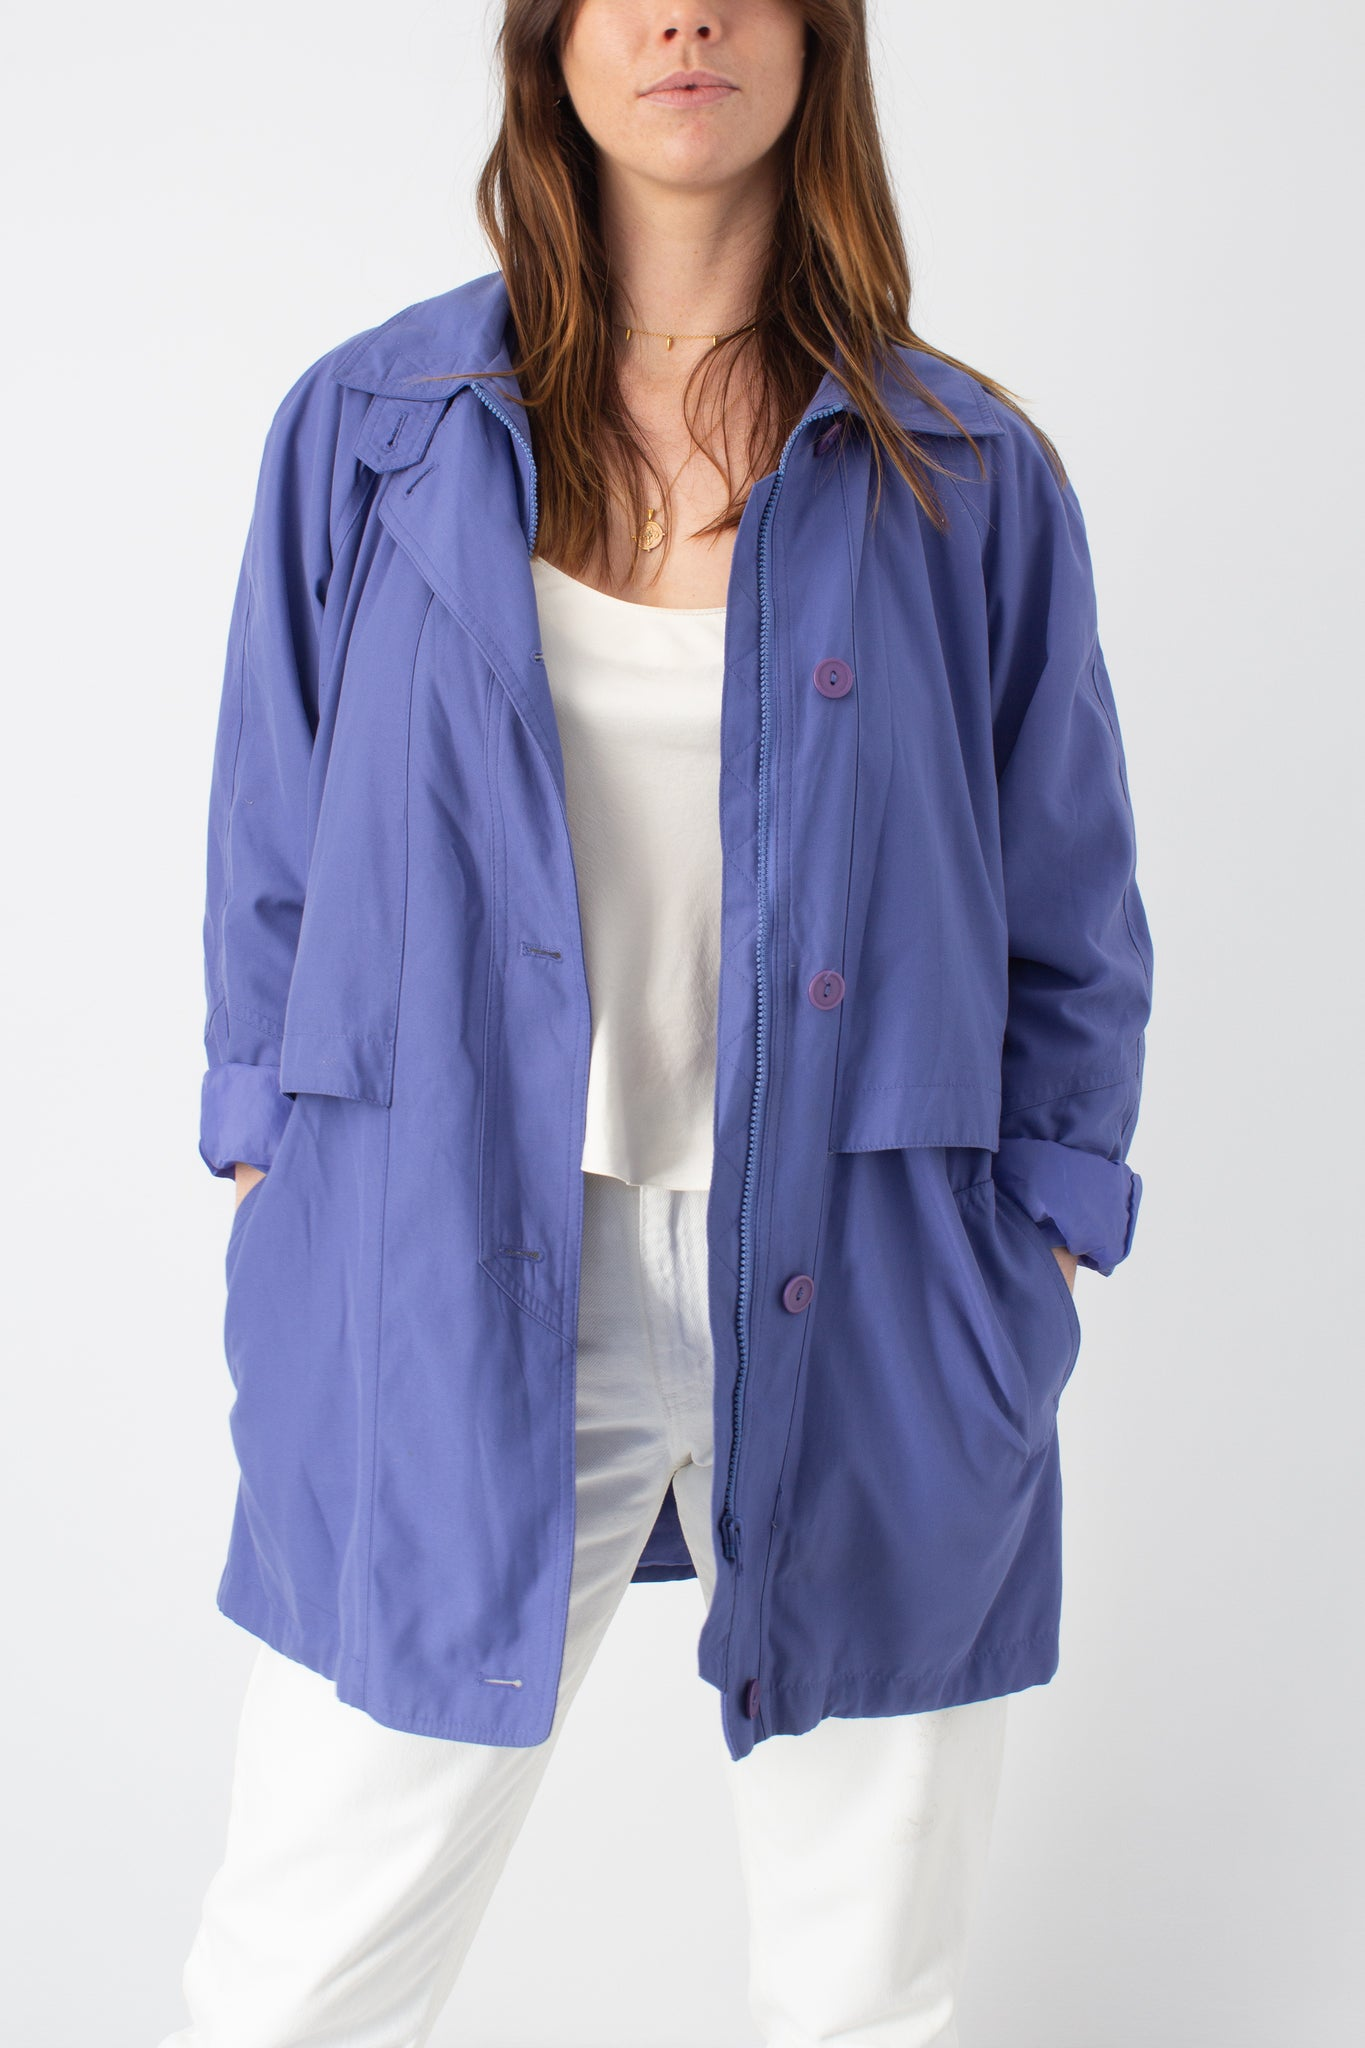 Lilac Hooded Jacket - Size XS/S/M/L